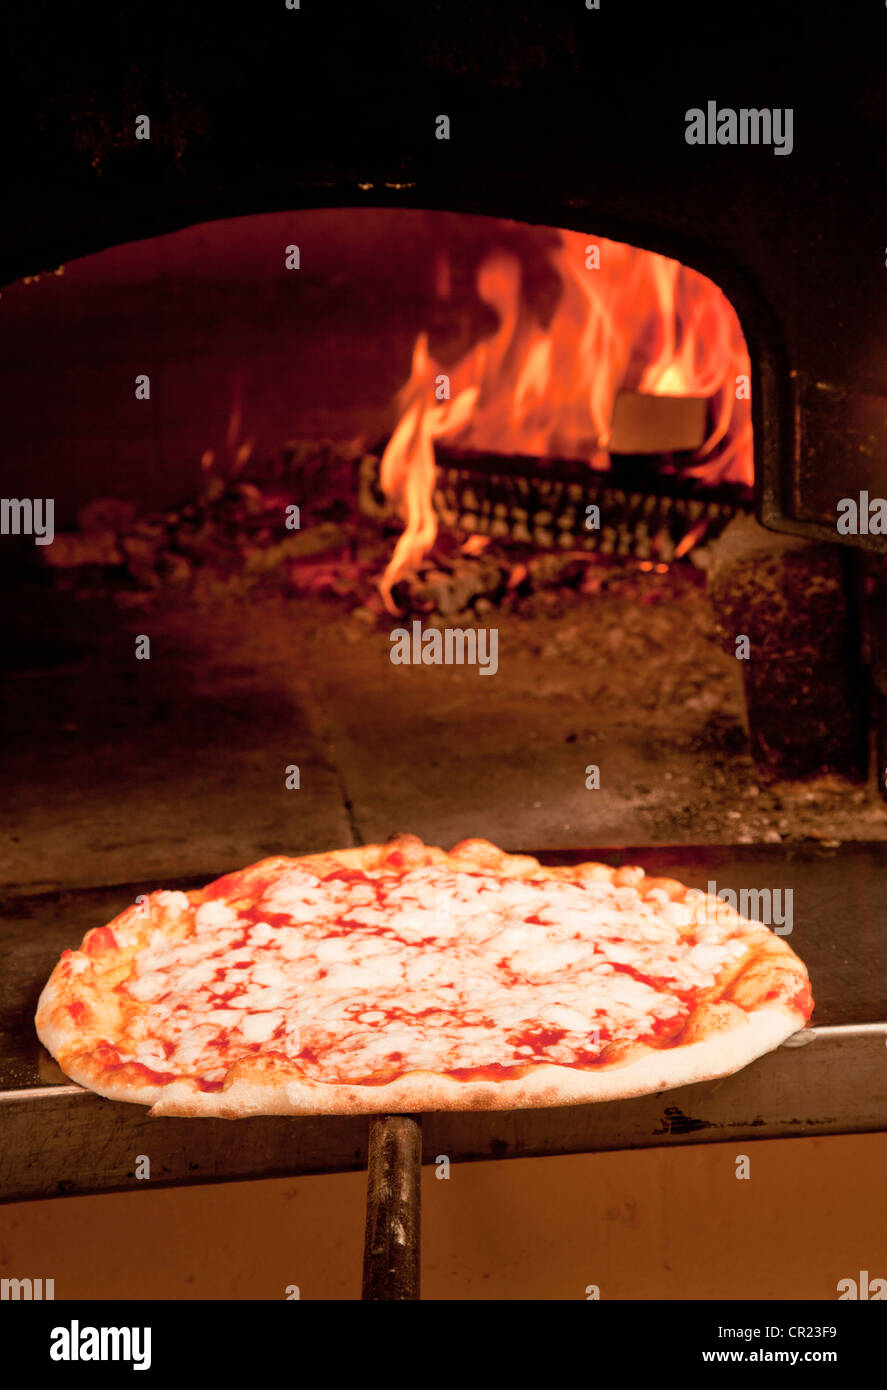 Chef pulling pizza from oven - Stock Image